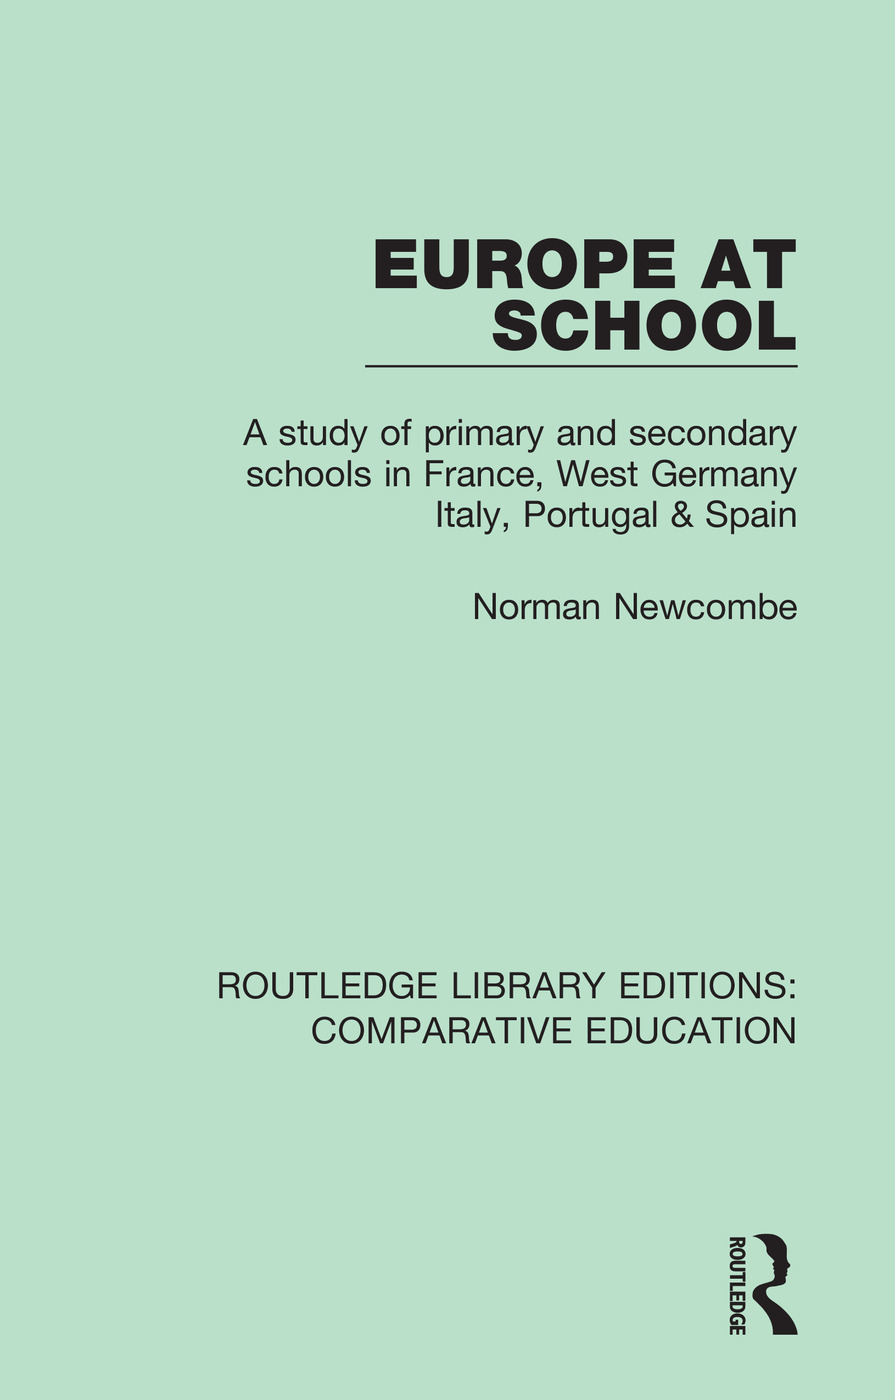 Europe at School: A Study of Primary and Secondary Schools in France, West Germany, Italy, Portugal & Spain book cover